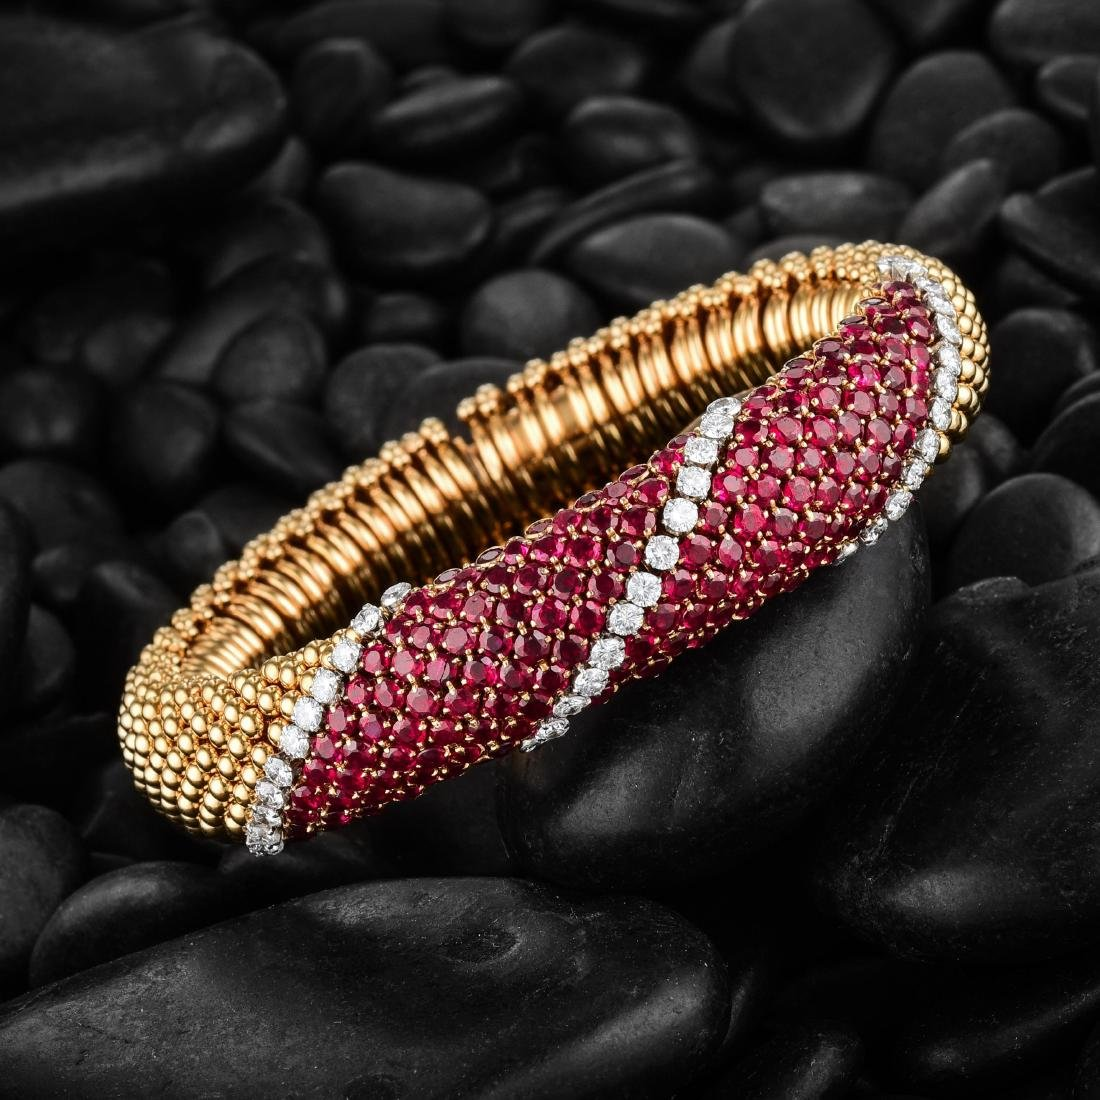 Van Cleef & Arpels 'Couscous' Ruby and Diamond Bracelet